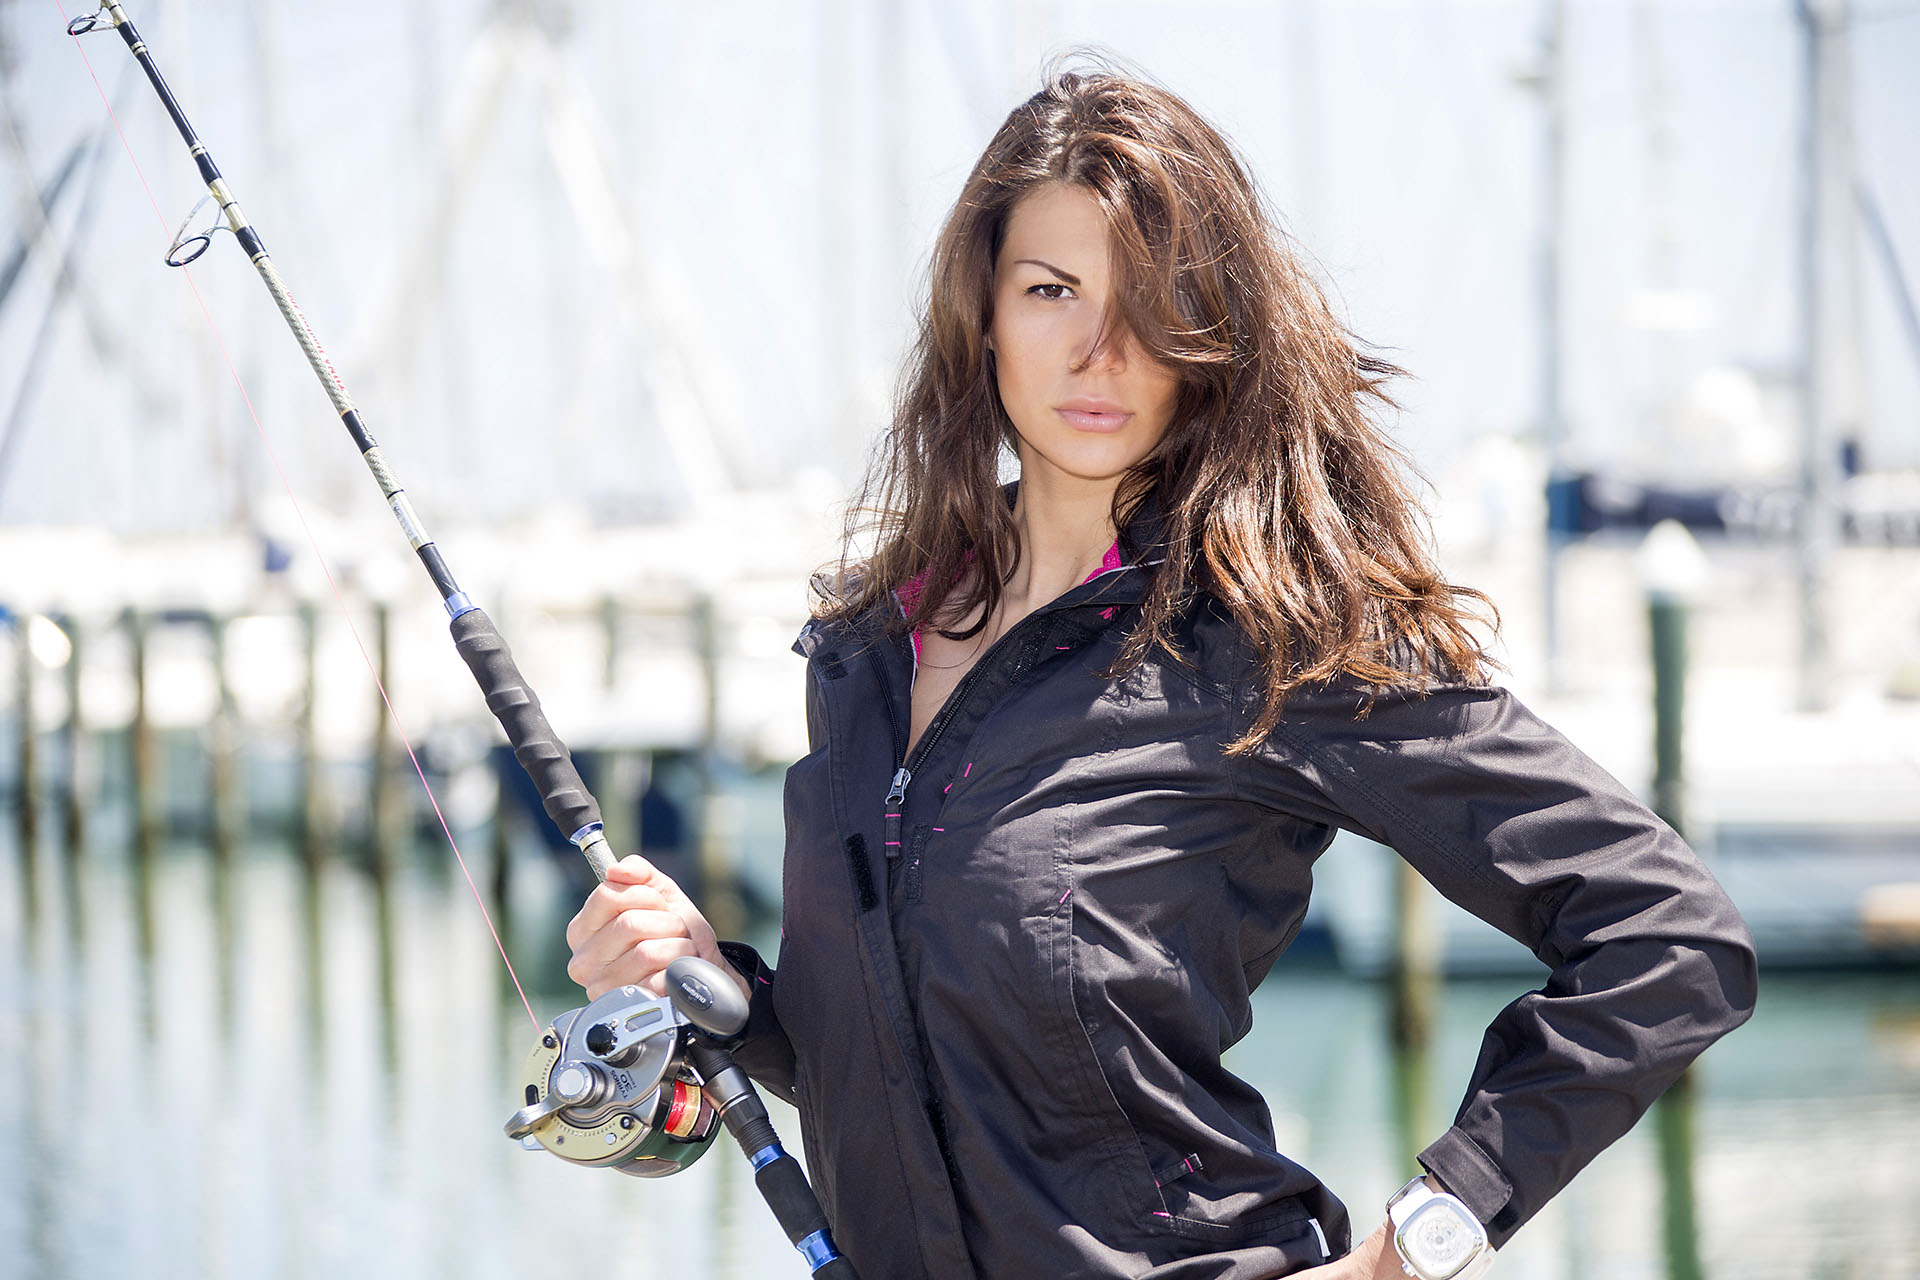 Maria Elena Monego Fishing Beauty - Photo: © Andrea Pisapia / Spazio Orti 14